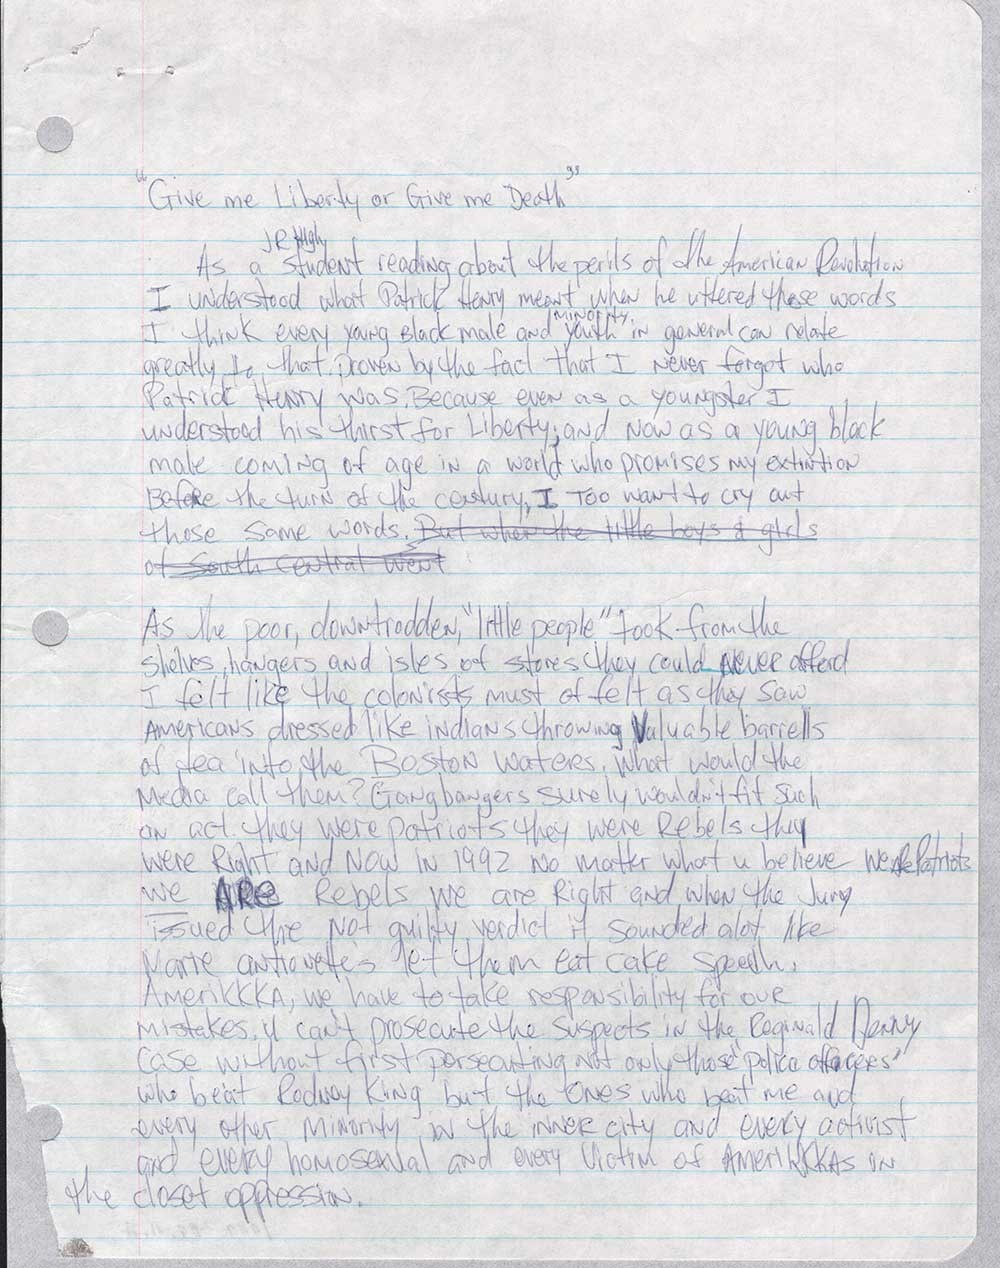 Tupac Essay: Give Me Liberty or Give Me Death